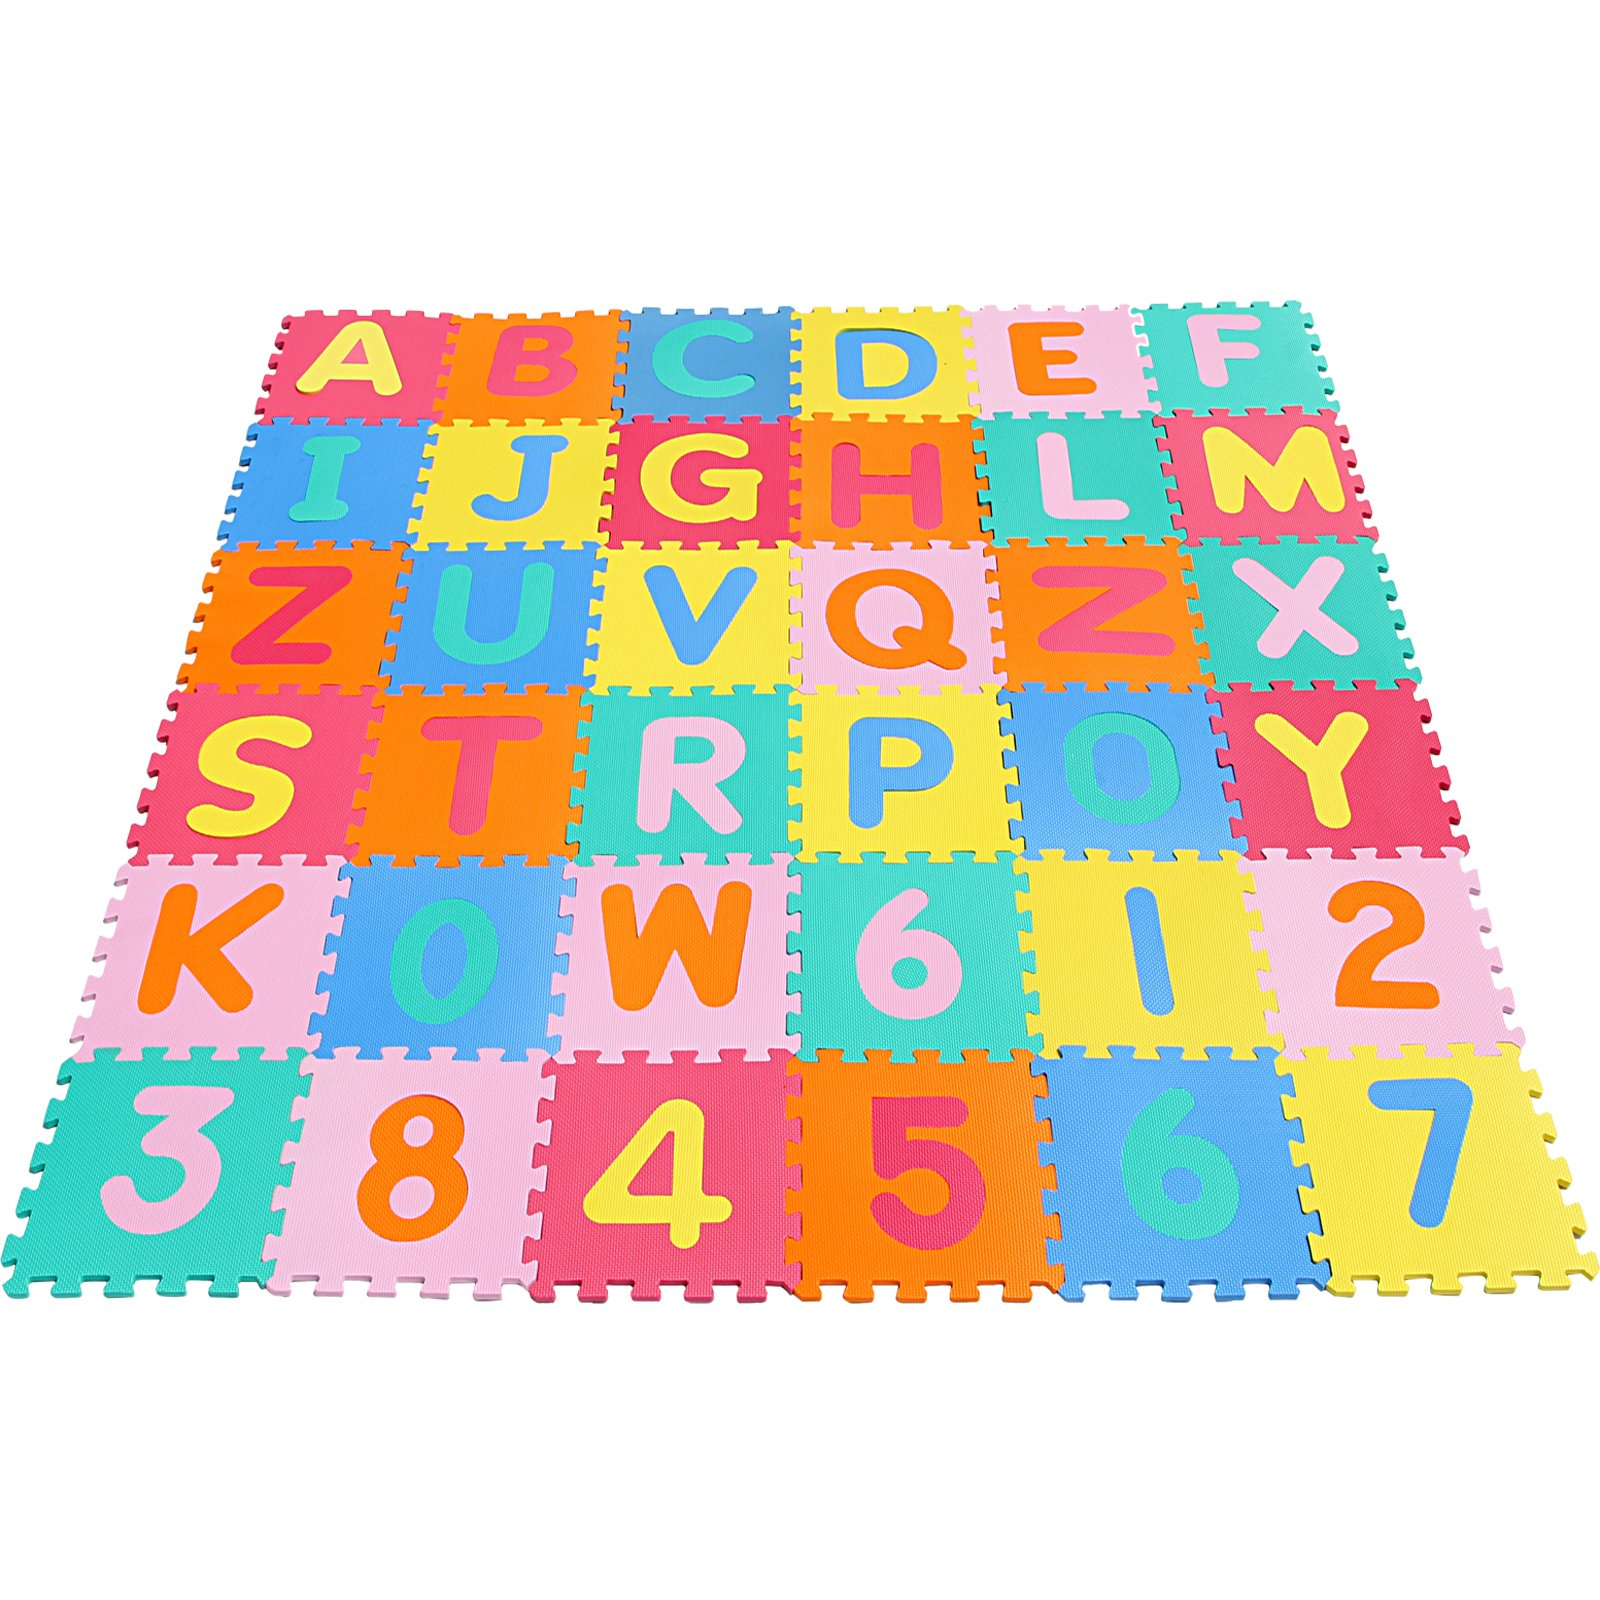 p puzzle picture kids tiles borders mats play mat and of multicolored hemingweigh ft s